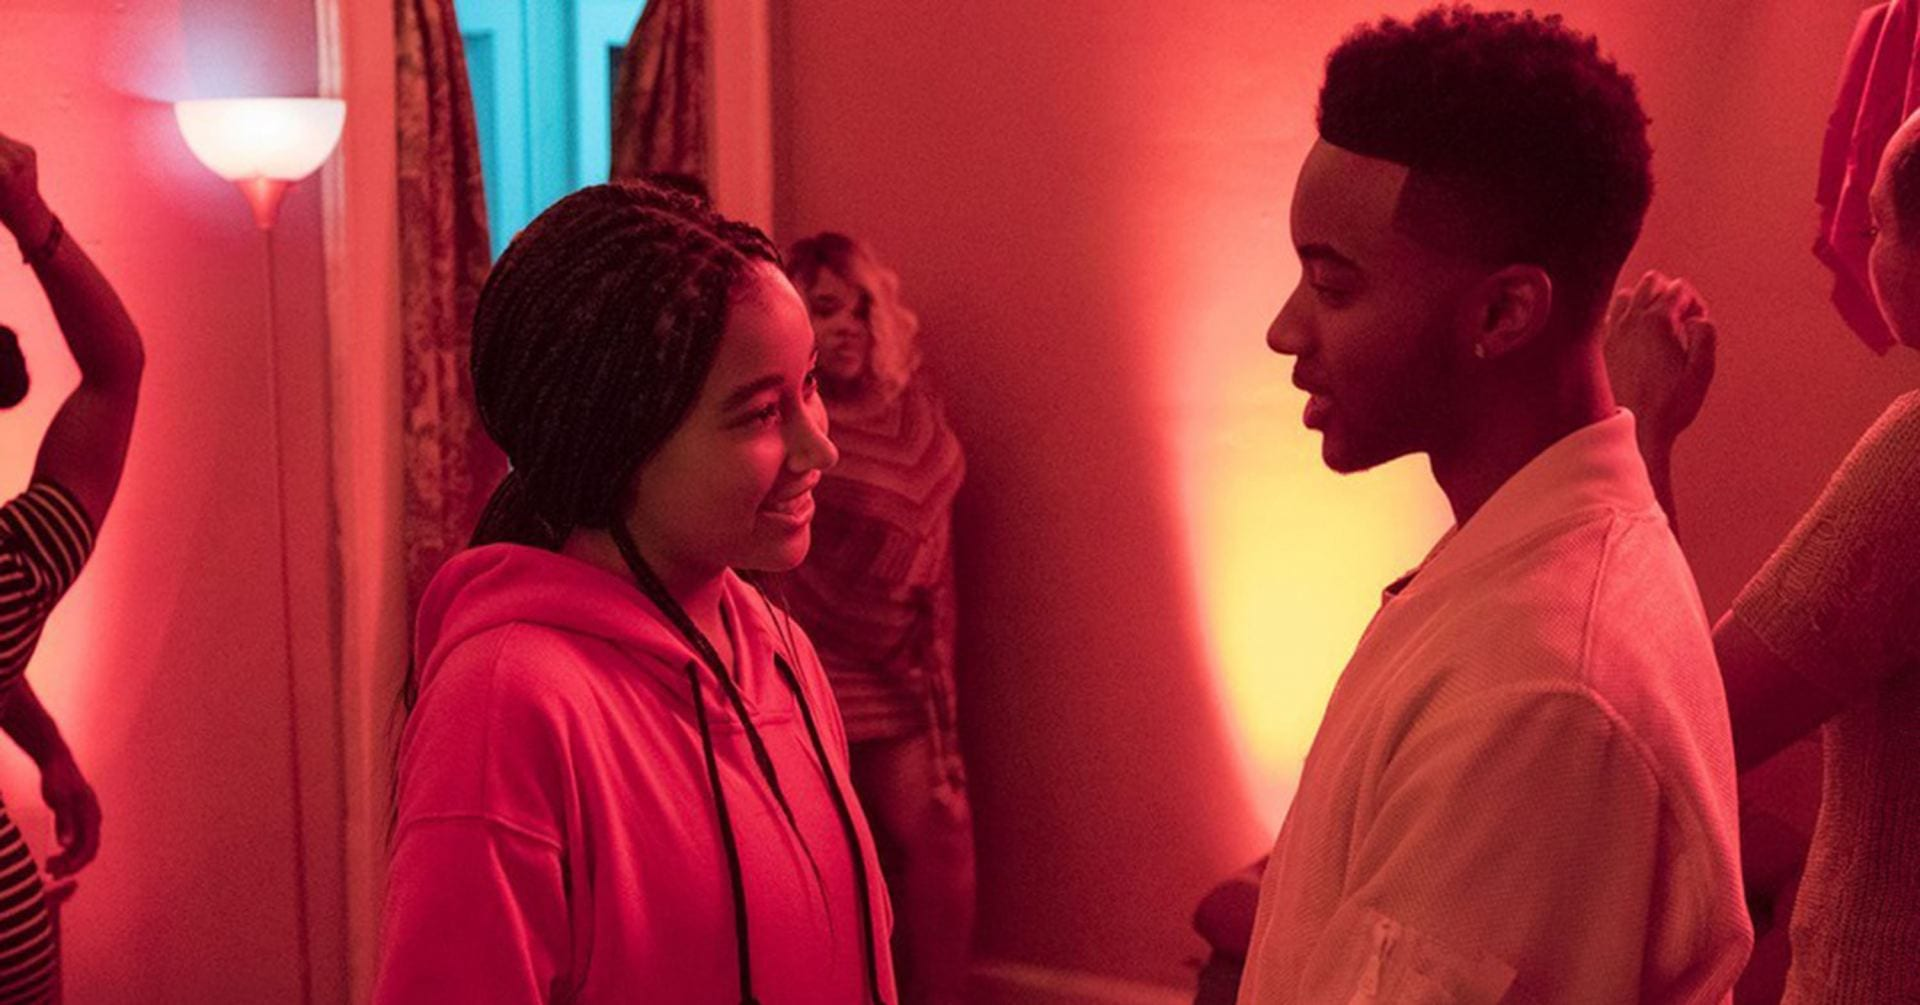 Movie Review: 'The Hate U Give' is a moving film with an important